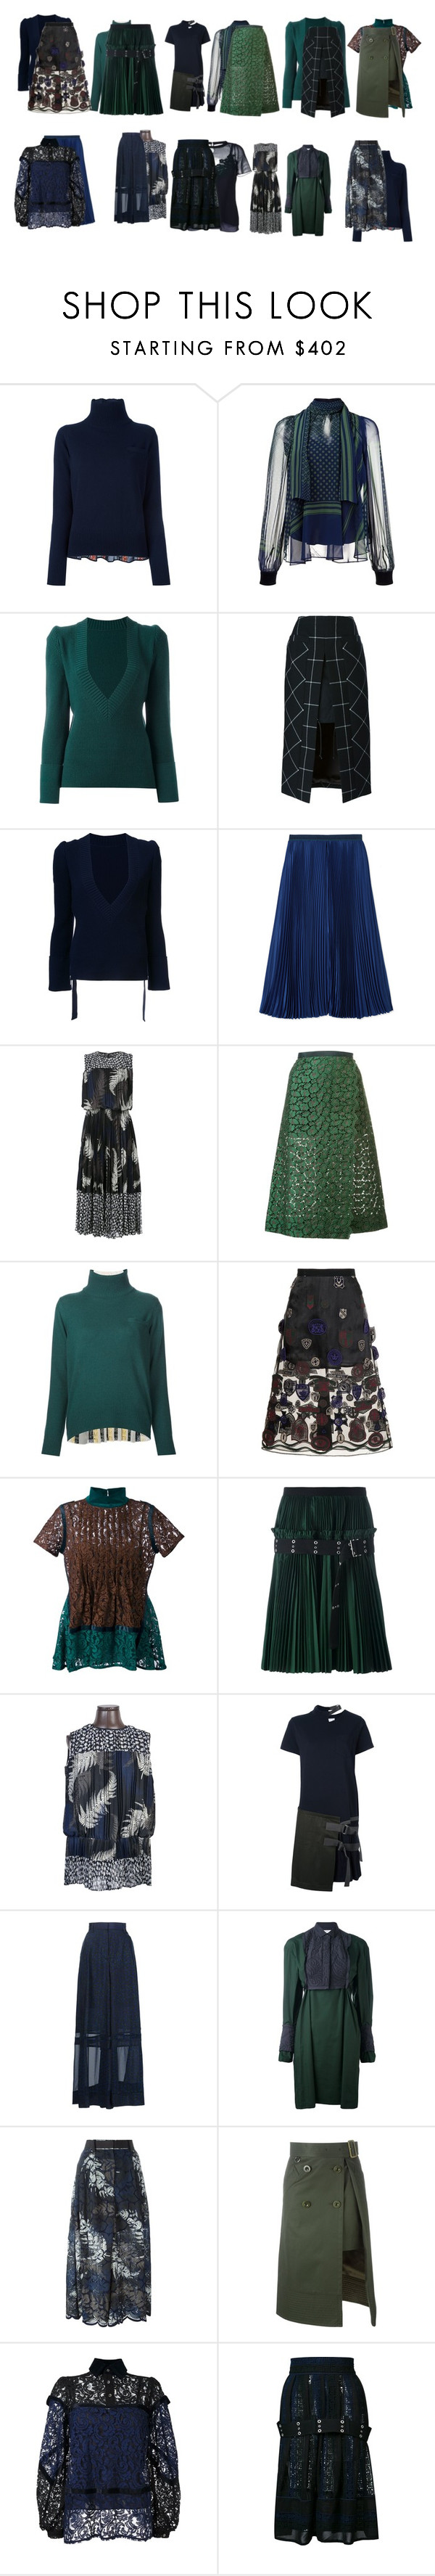 """Untitled #4165"" by luciana-boneca on Polyvore featuring Sacai and Sacai Luck"